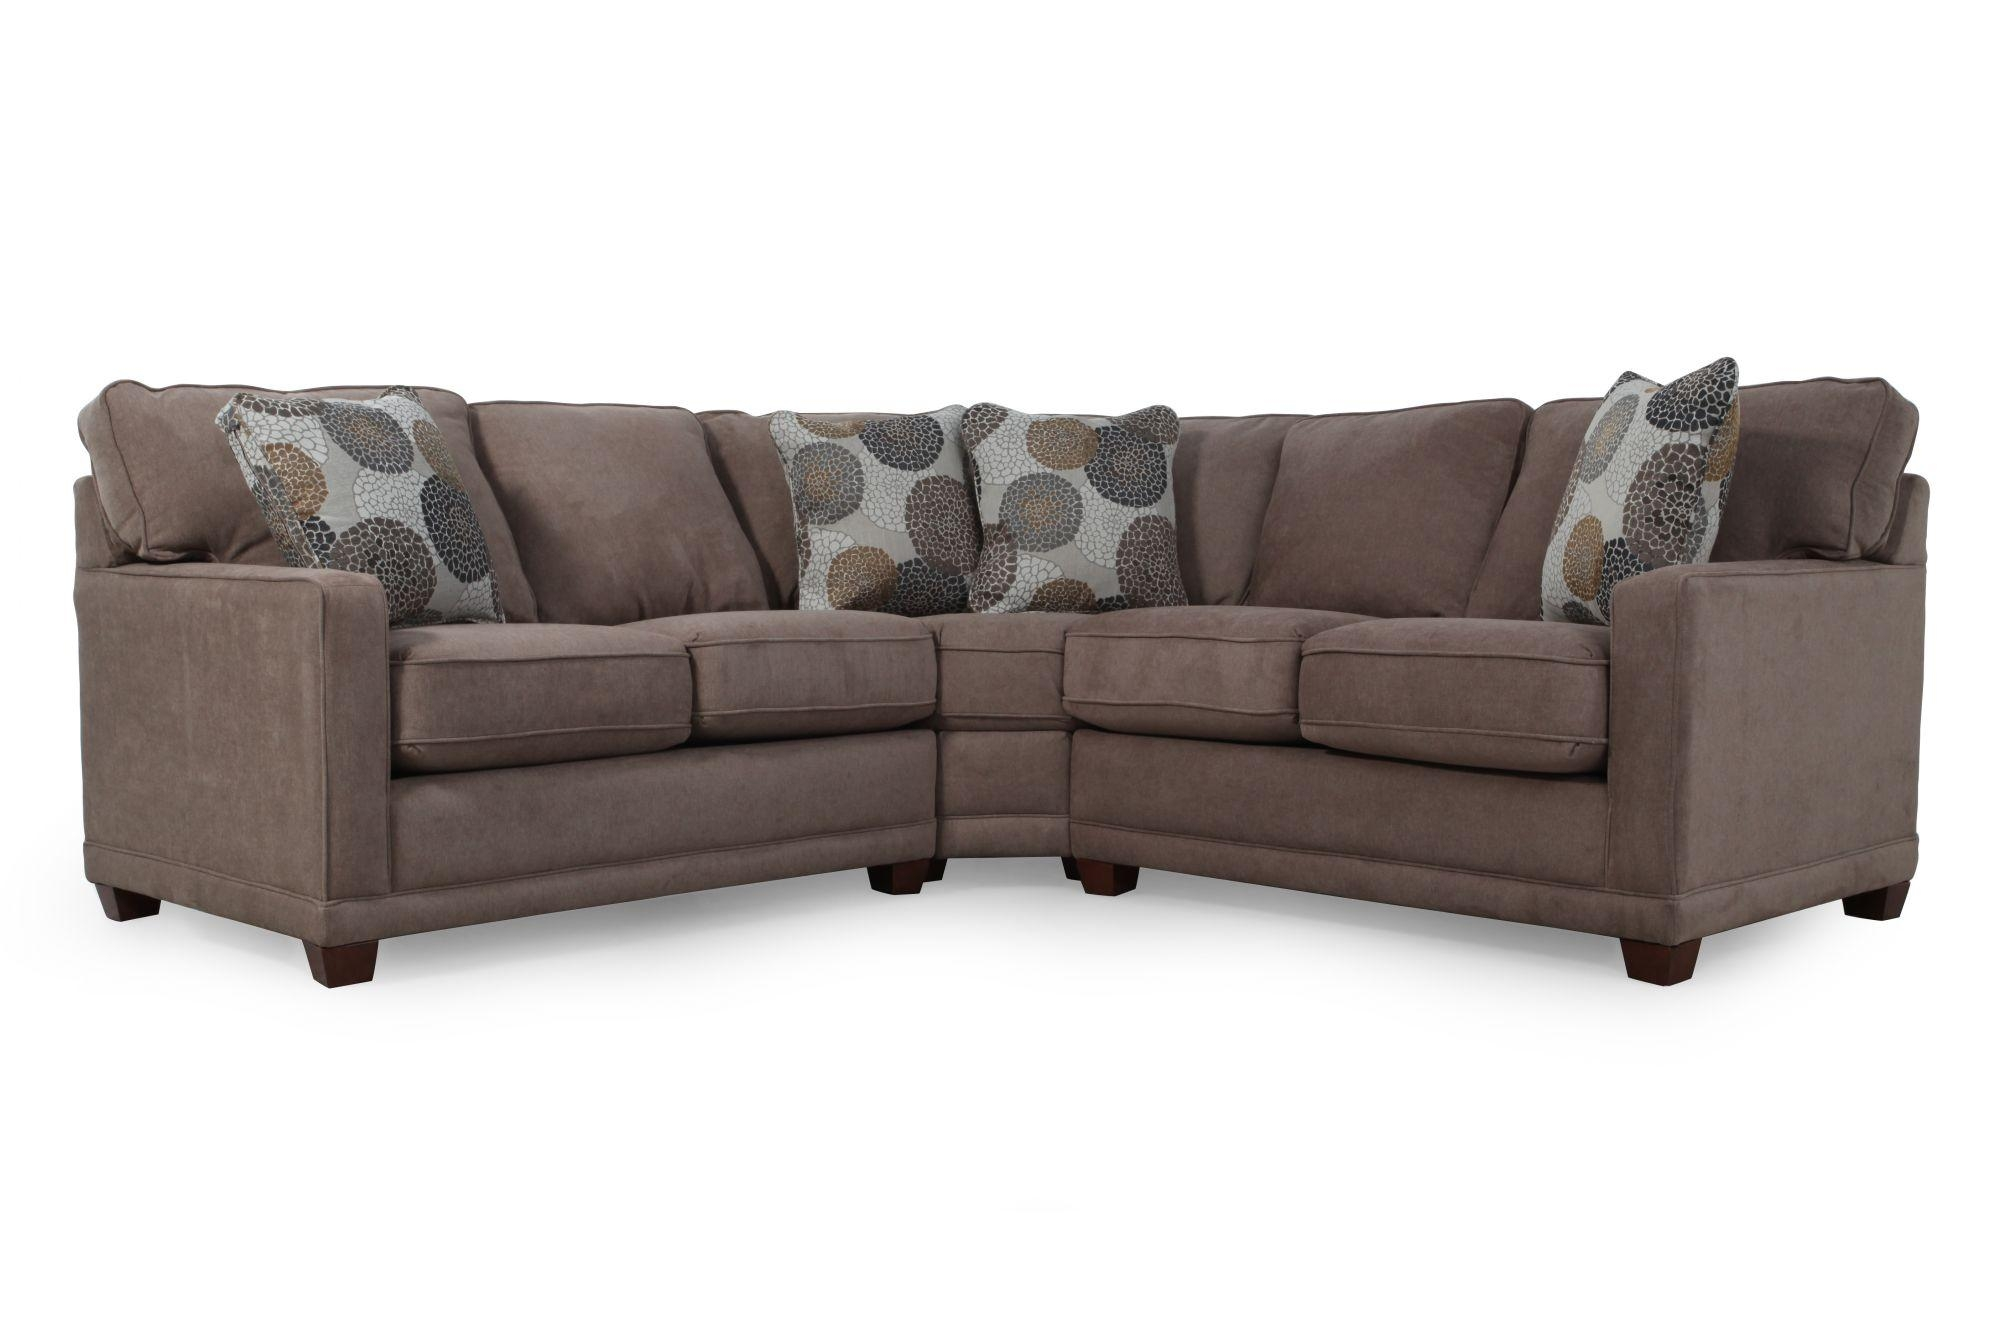 Furniture: Impressive Lazy Boy Sectional For Living Room Furniture With Regard To Lazy Boy Sectional (View 10 of 20)